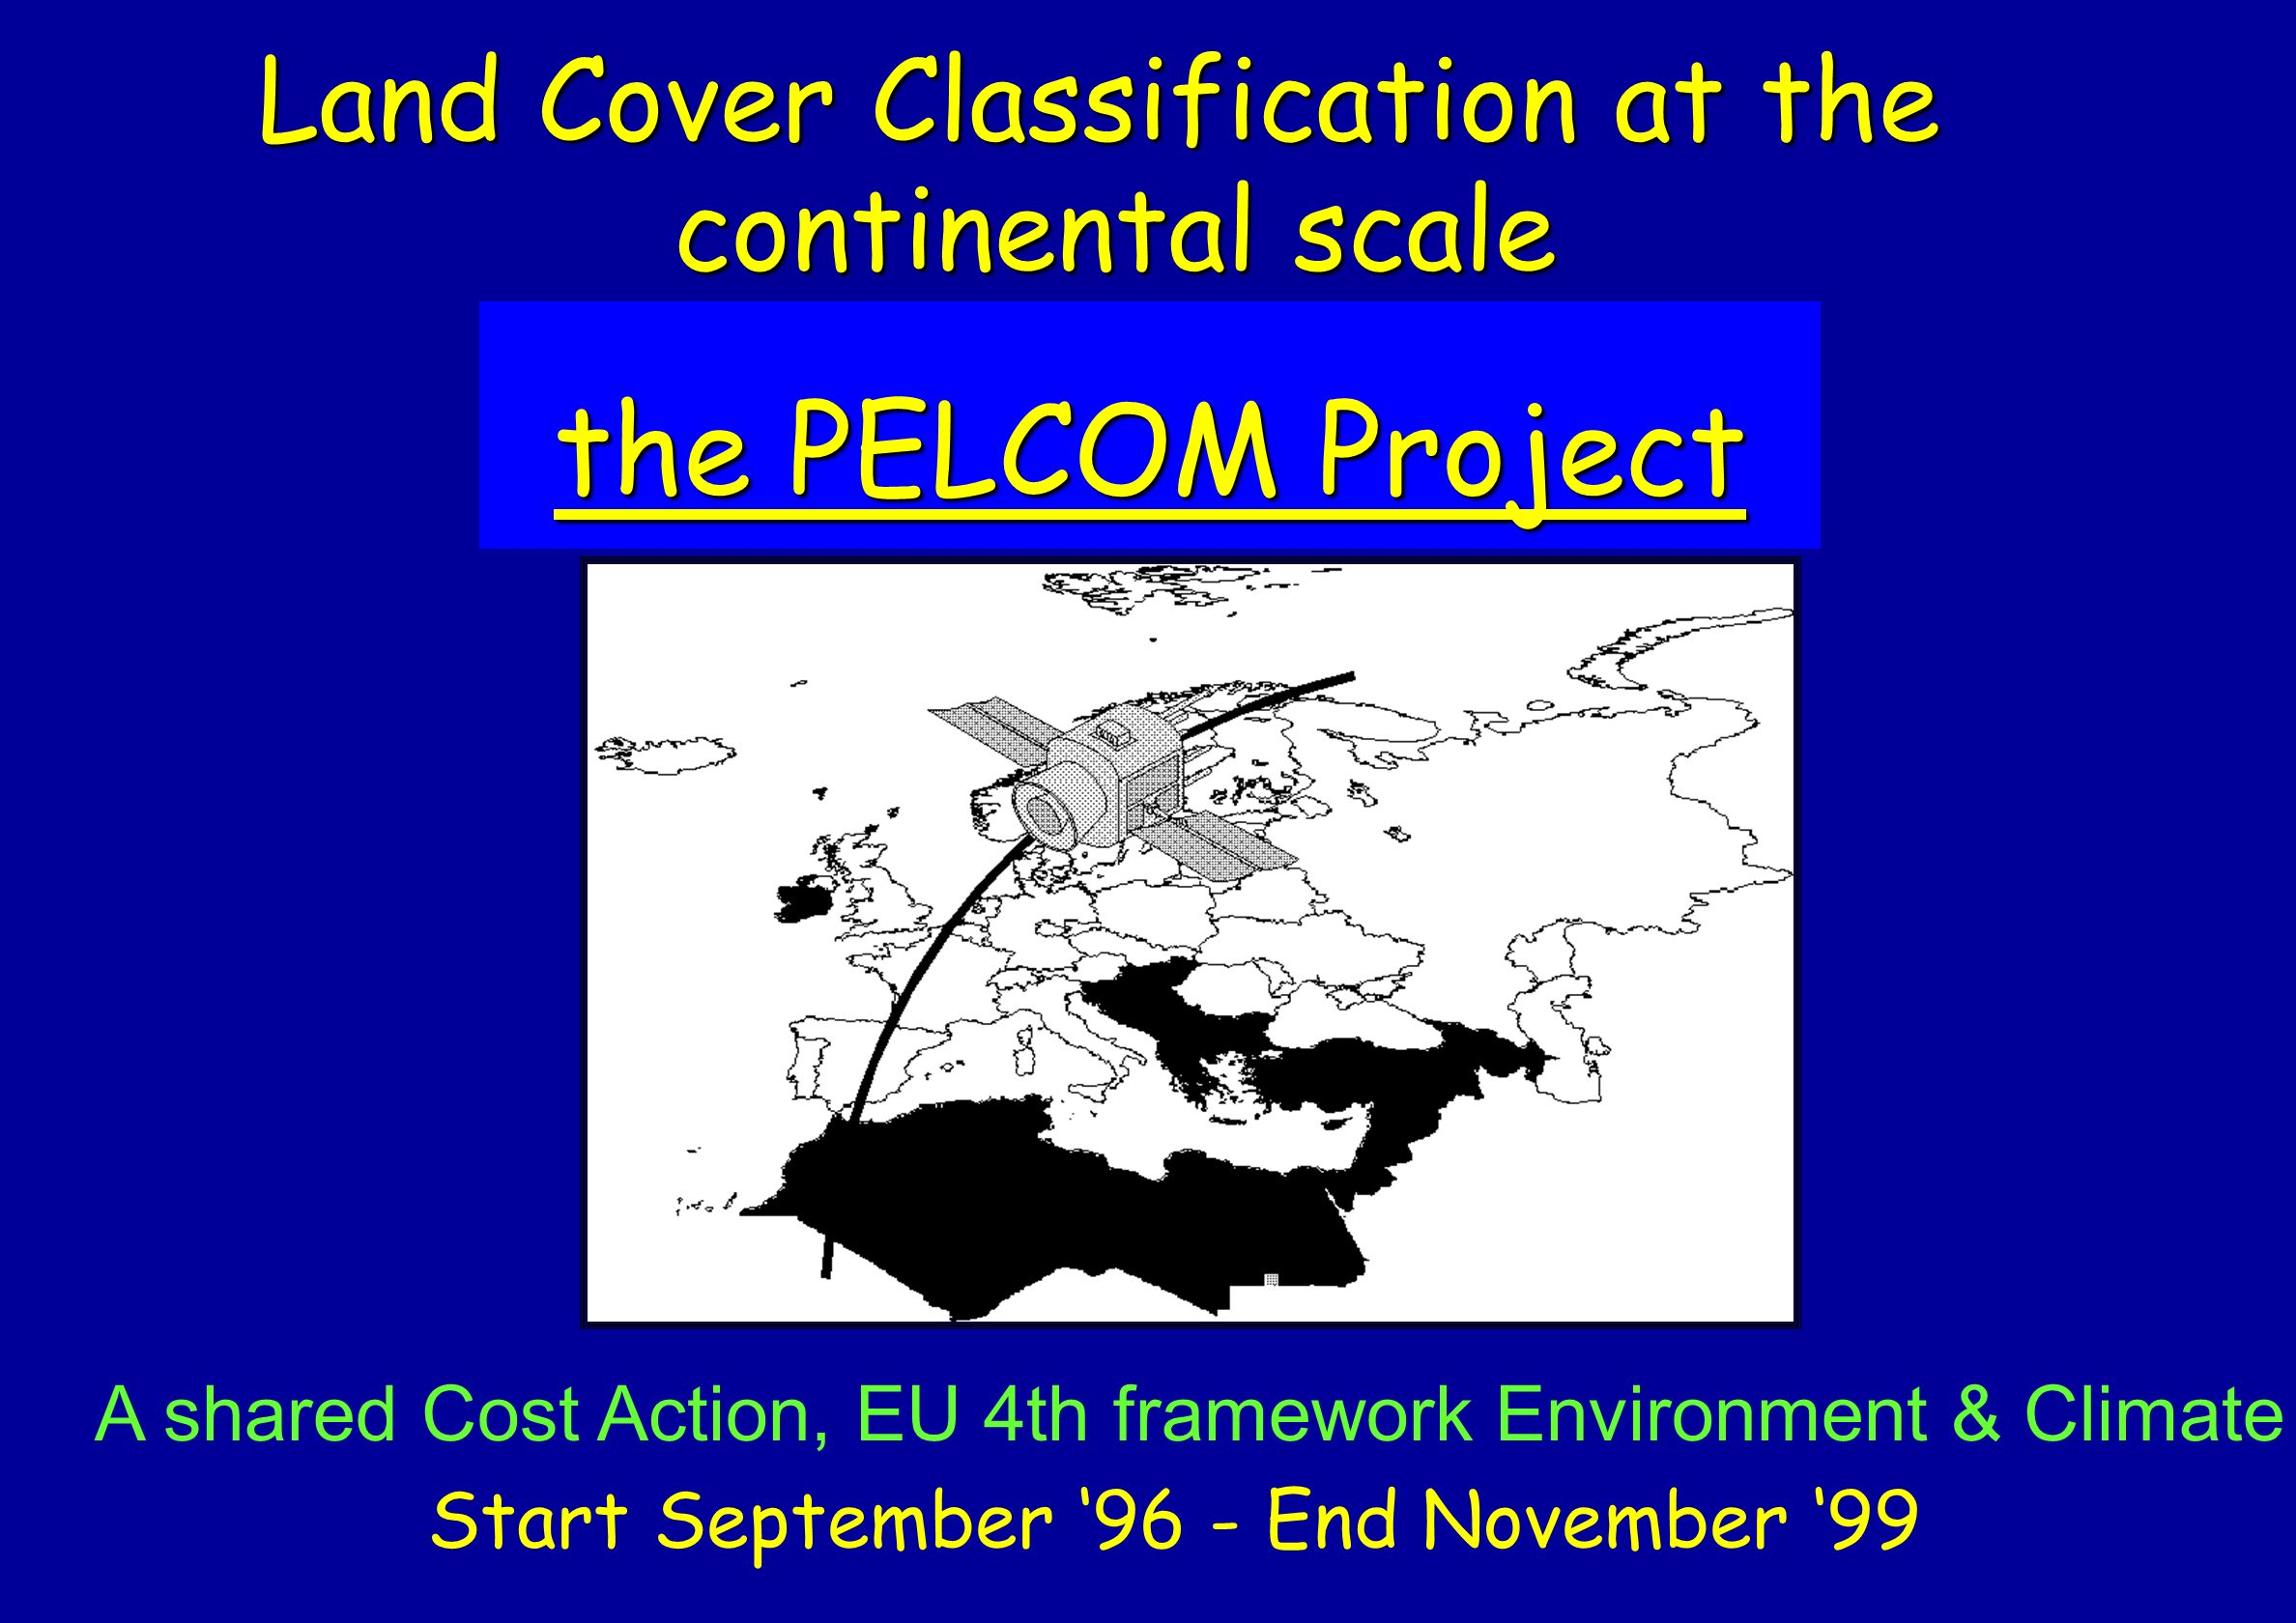 Land Cover Classification at the continental scale the PELCOM Project the PELCOM Project A shared Cost Action, EU 4th framework Environment & Climate